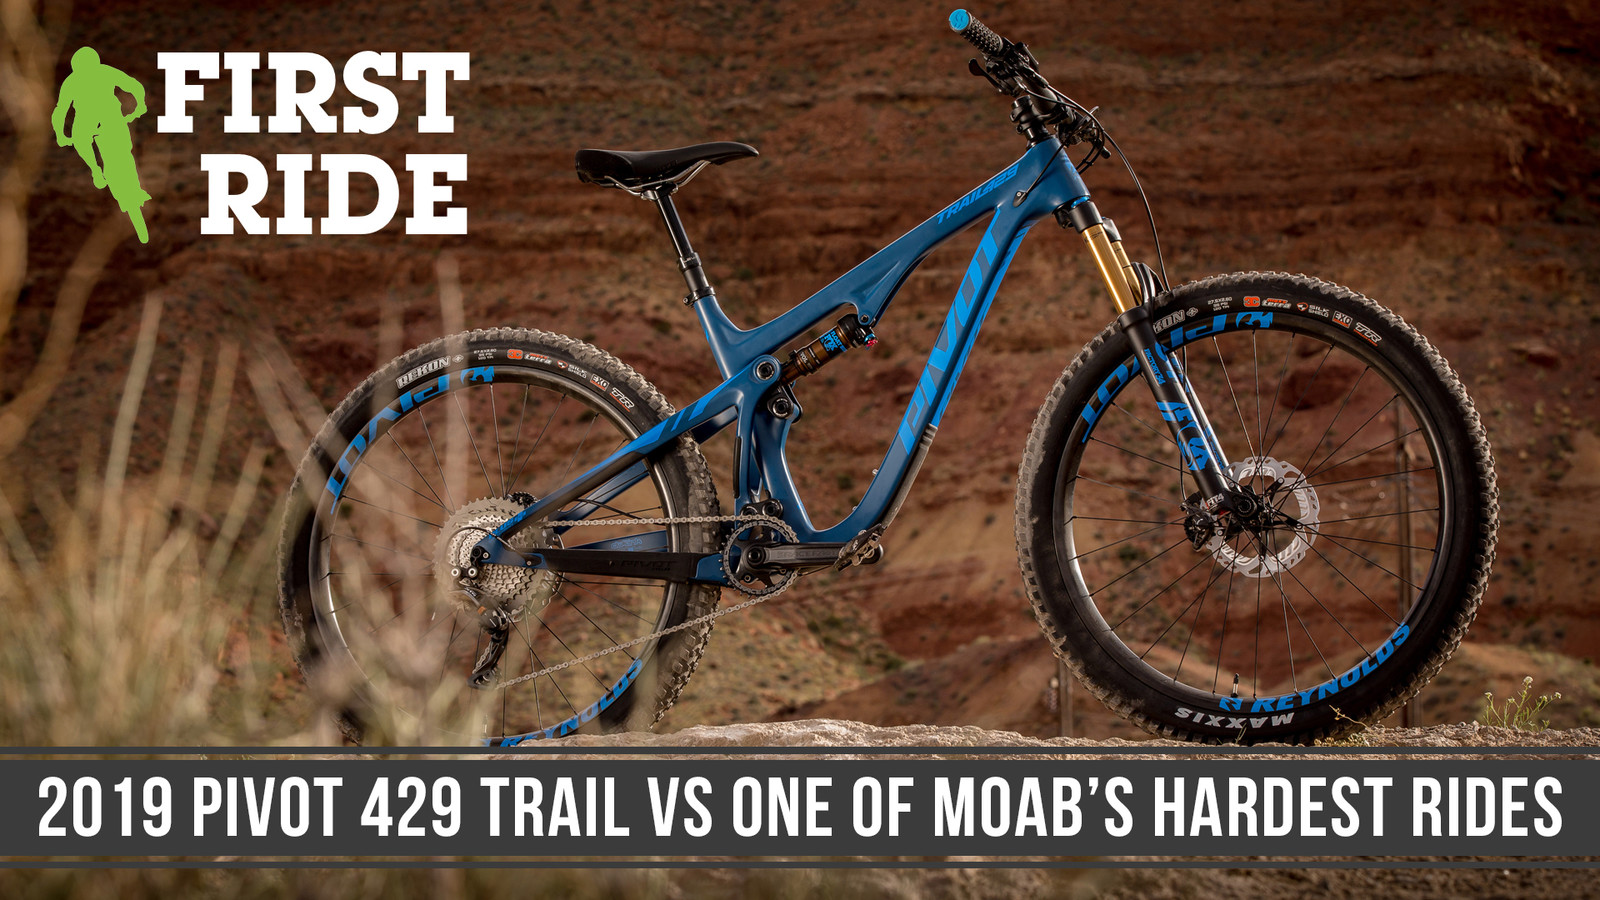 The All-New 2019 Pivot Trail 429 Takes on One of Moab's Hardest Rides